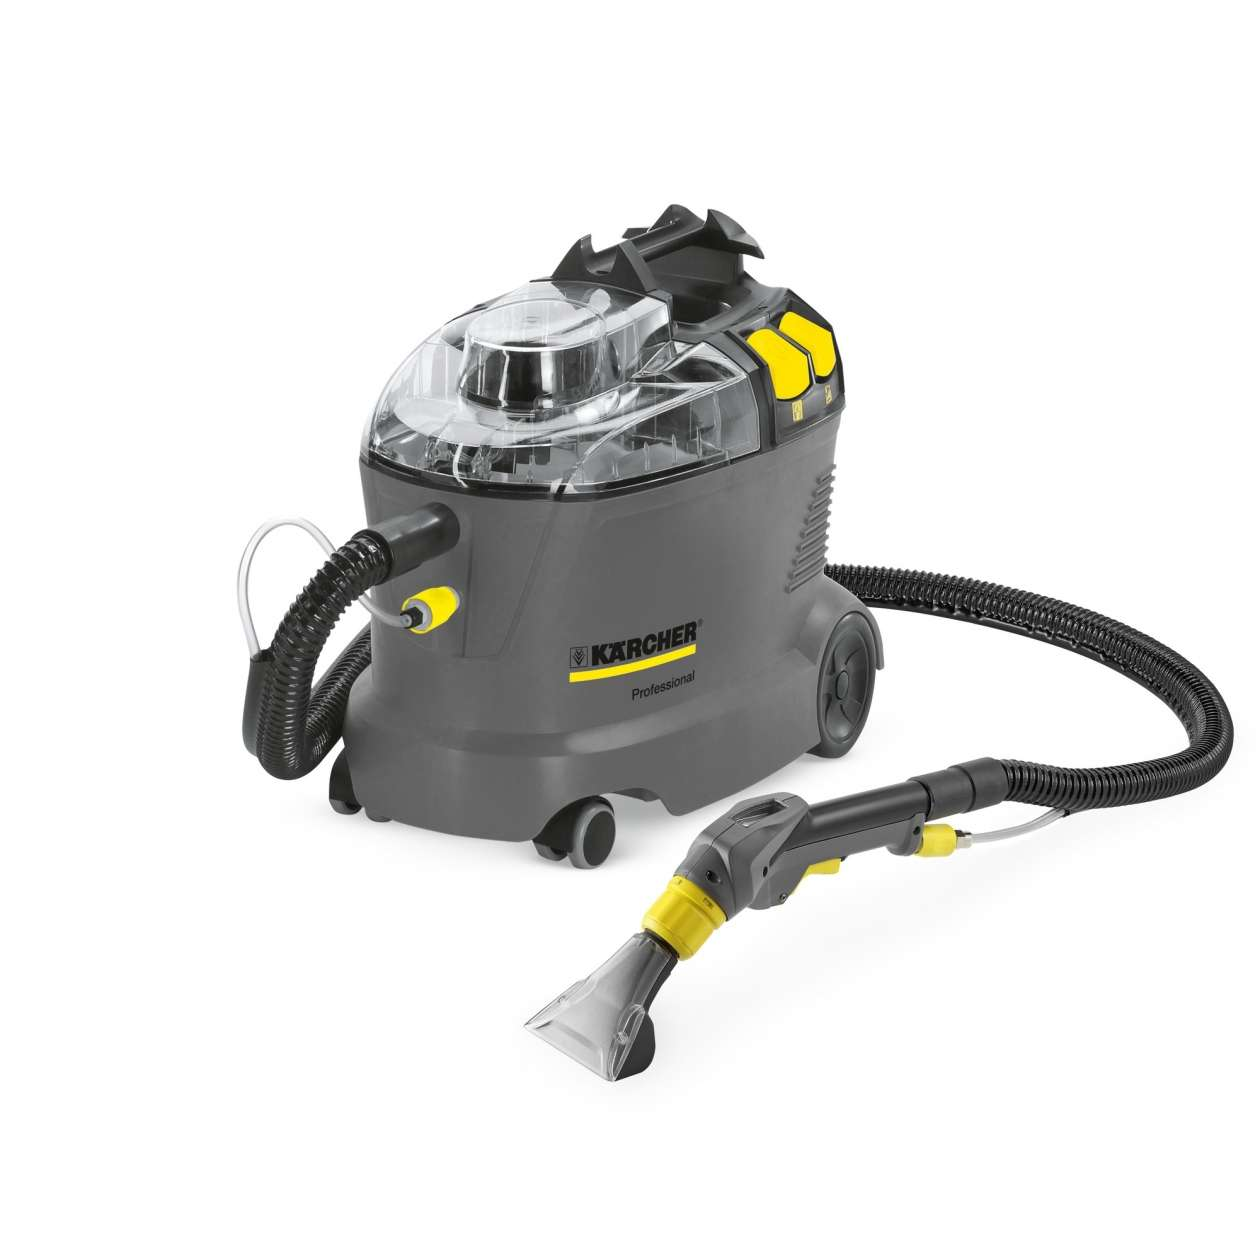 Powervac Cleaning Equipment: Karcher Puzzi 8/1 Compact Upholstery Cleaner